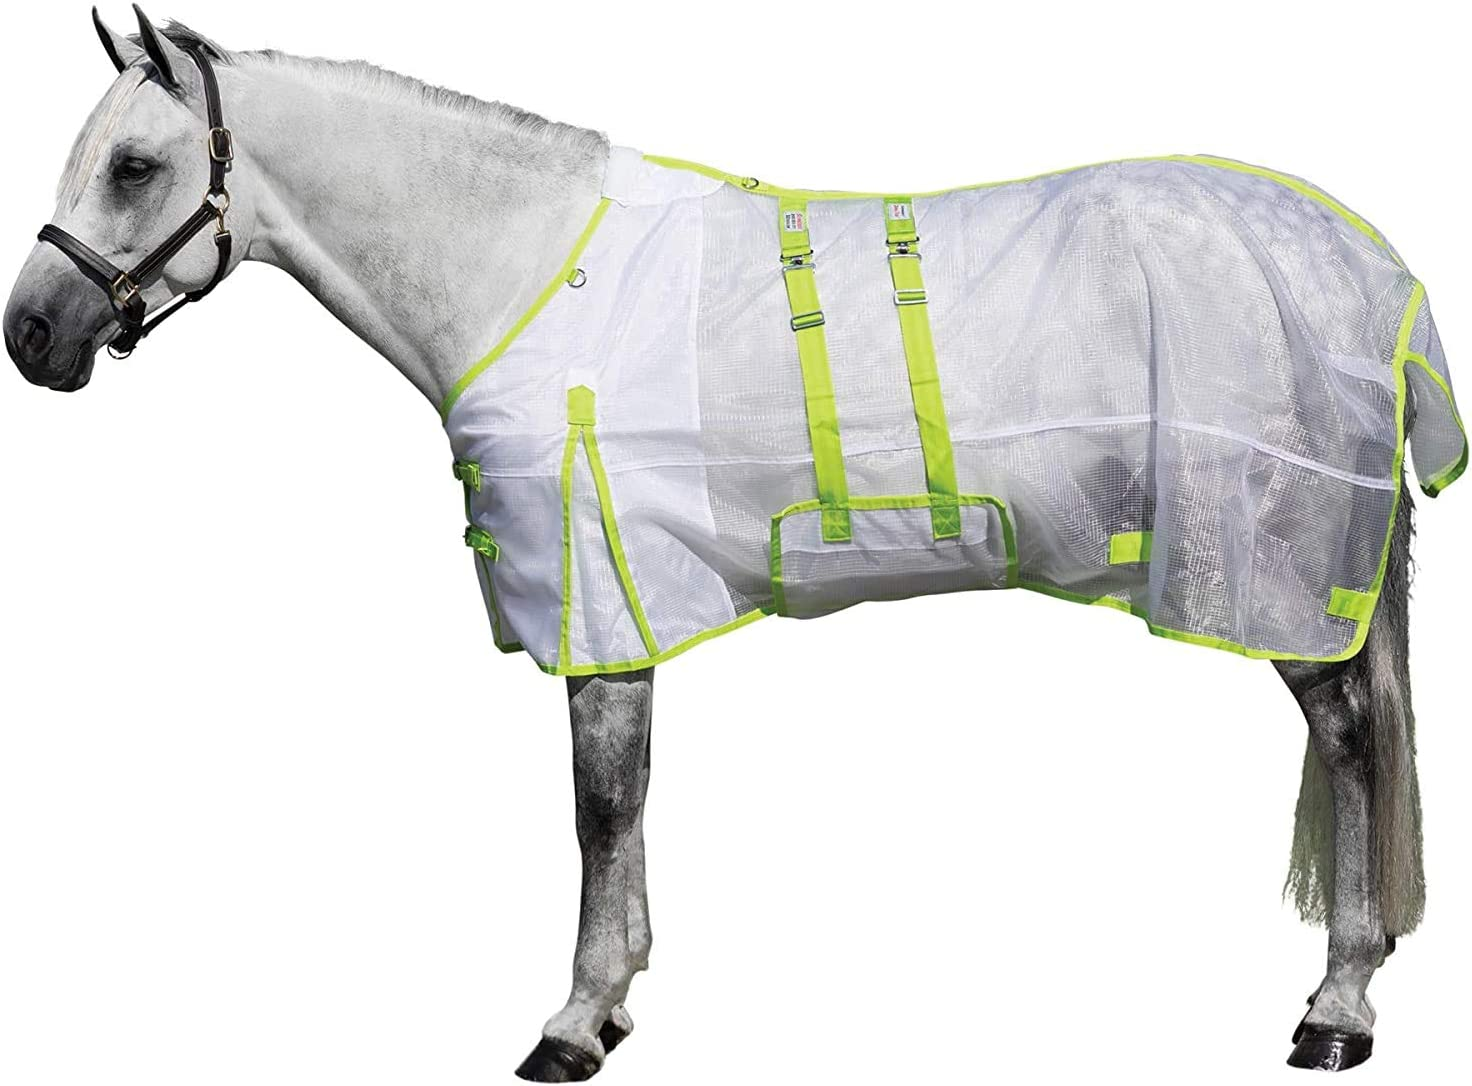 Dura-Tech Ripstop Nylon Mesh Horse Fly Sheet Various Sizes /& Colors Ideal for Turnout Bellyband Closure Stay Cool in The Sun Double Front Buckle Chest Design